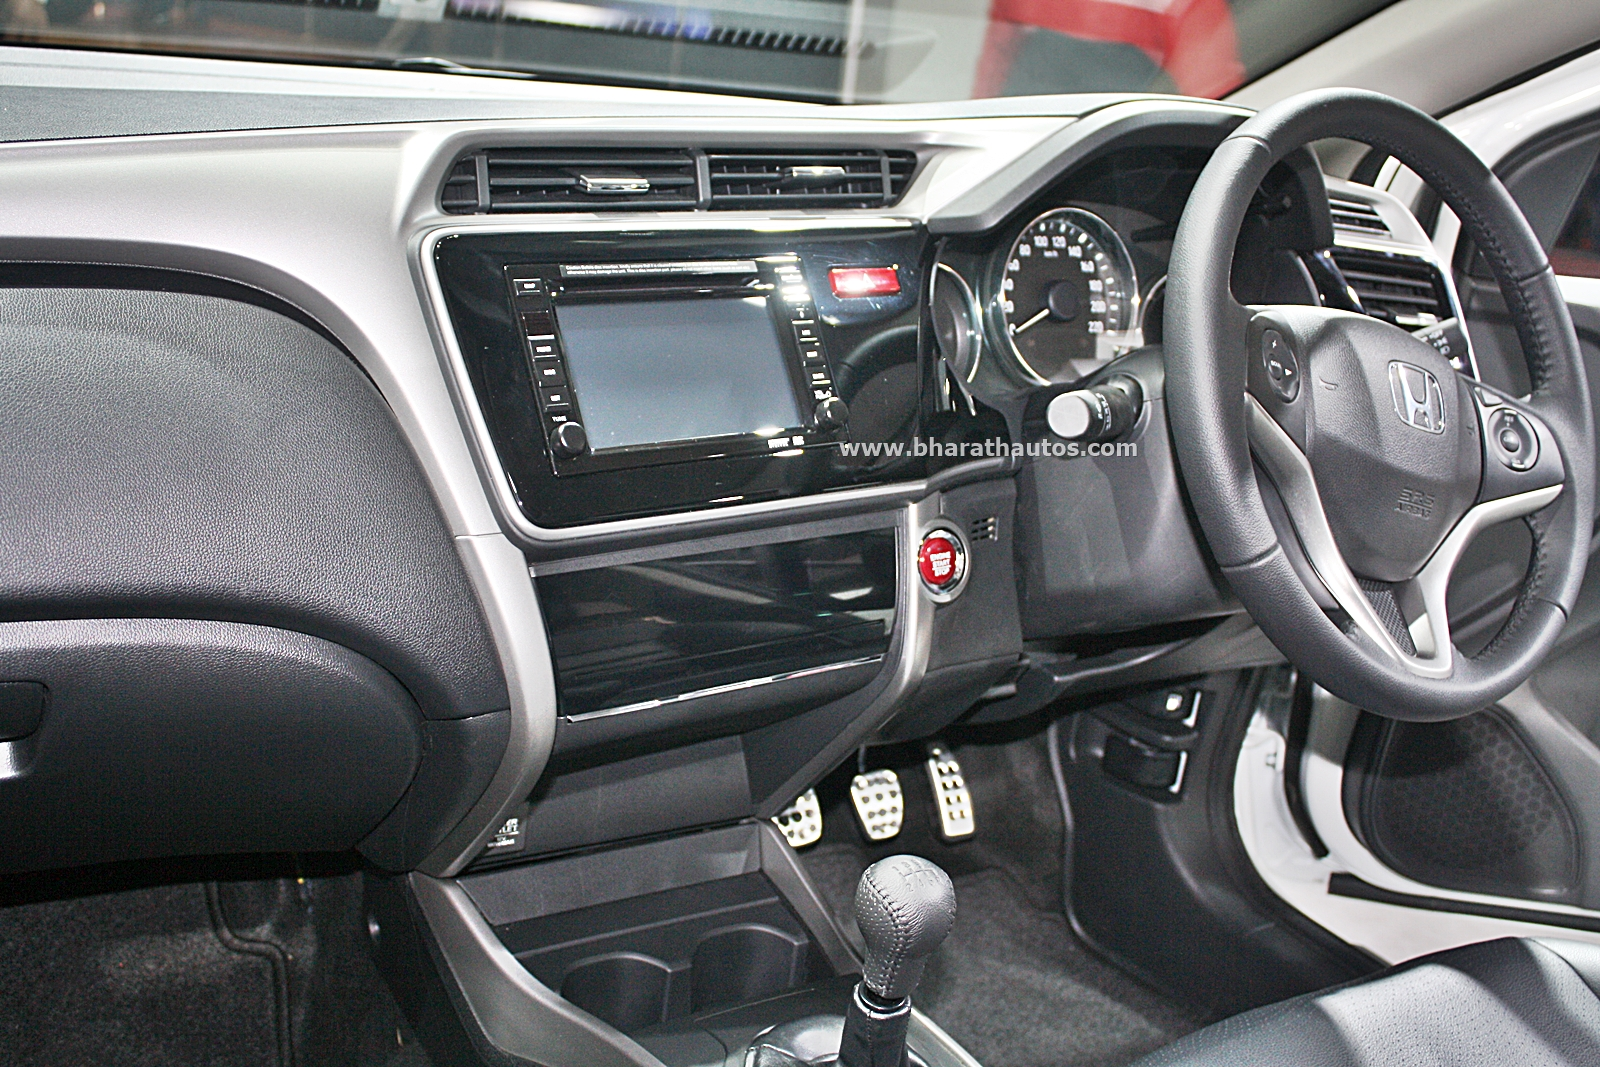 Honda City - kitted-up model with Black interior at 2016 Auto Expo